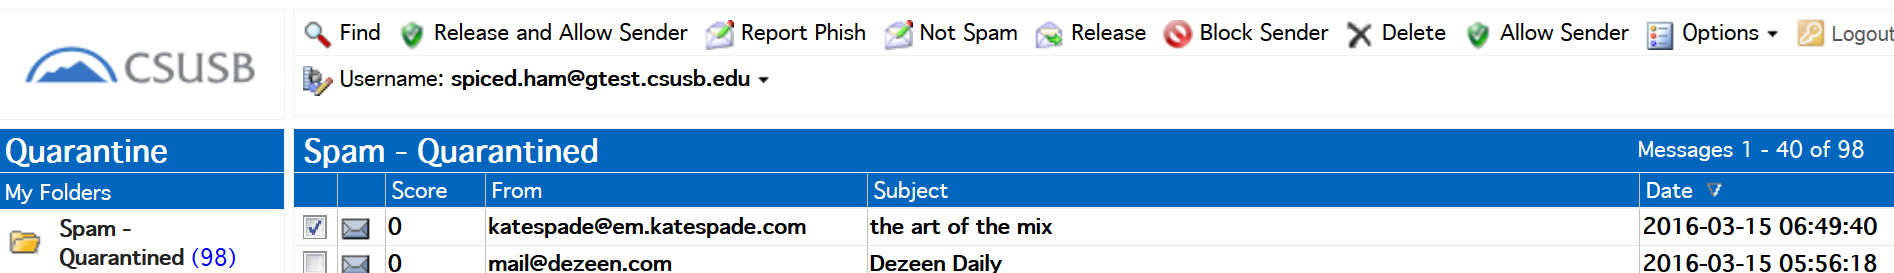 Screenshot of View and Take Action in the Quarantine Folder